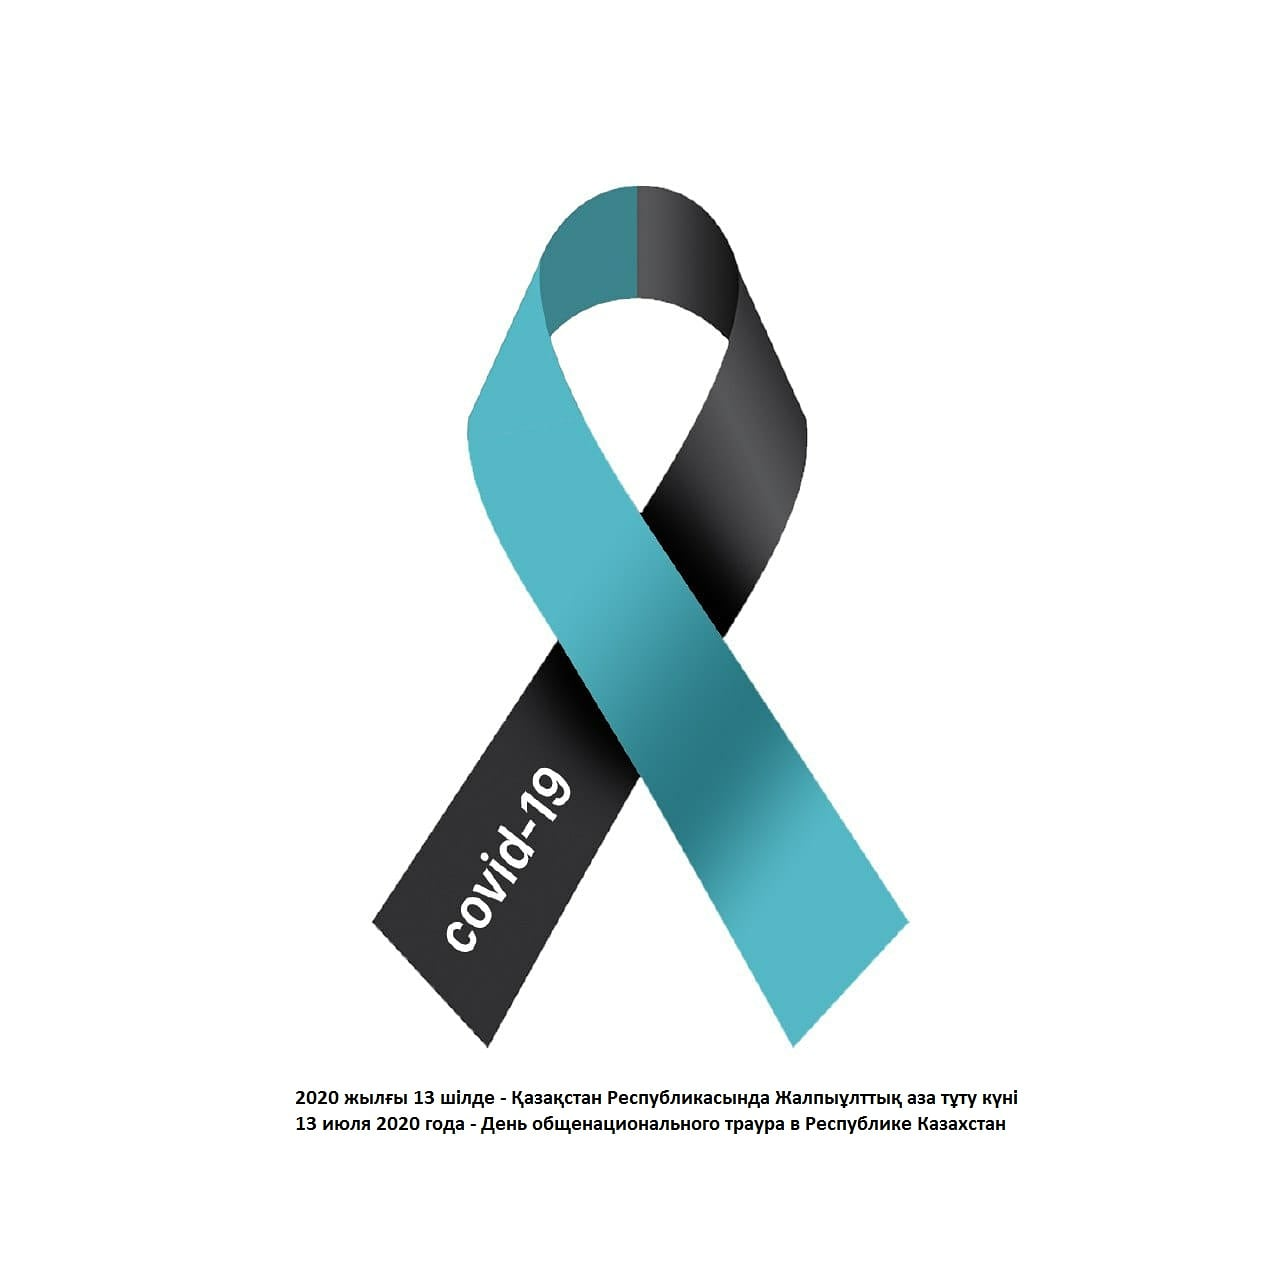 13 July - National day of mourning in memory of the pandemic's victims in Kazakhstan